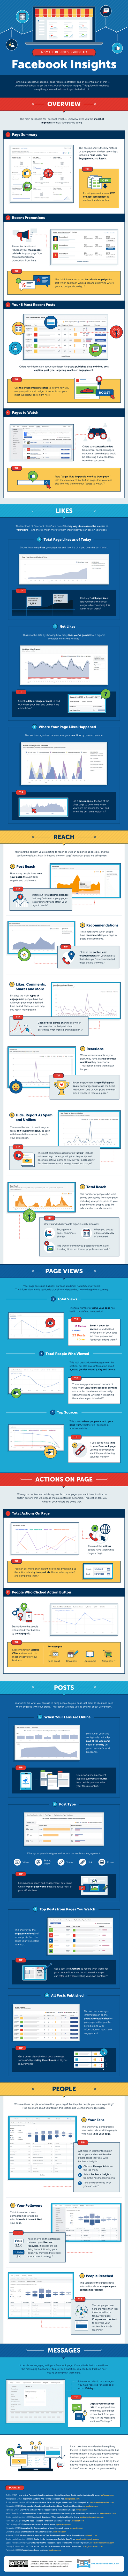 Facebook-Insights-Infographic